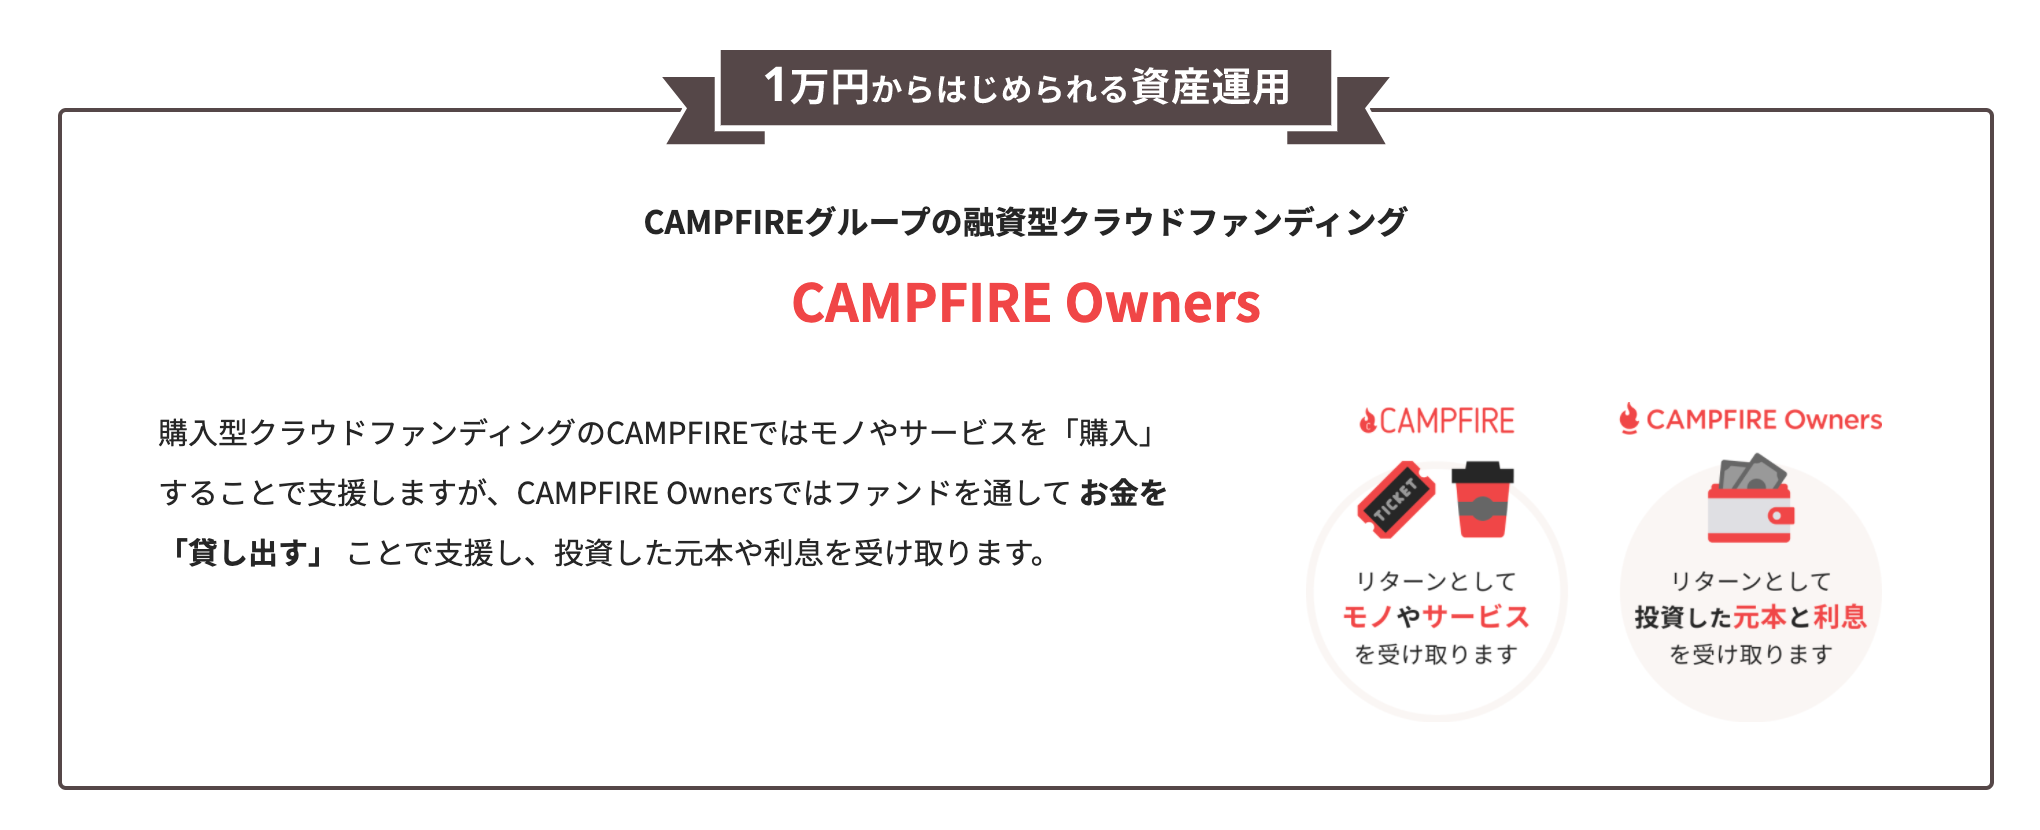 CAMPFIRE Owners(キャンプファイア オーナーズ)とは